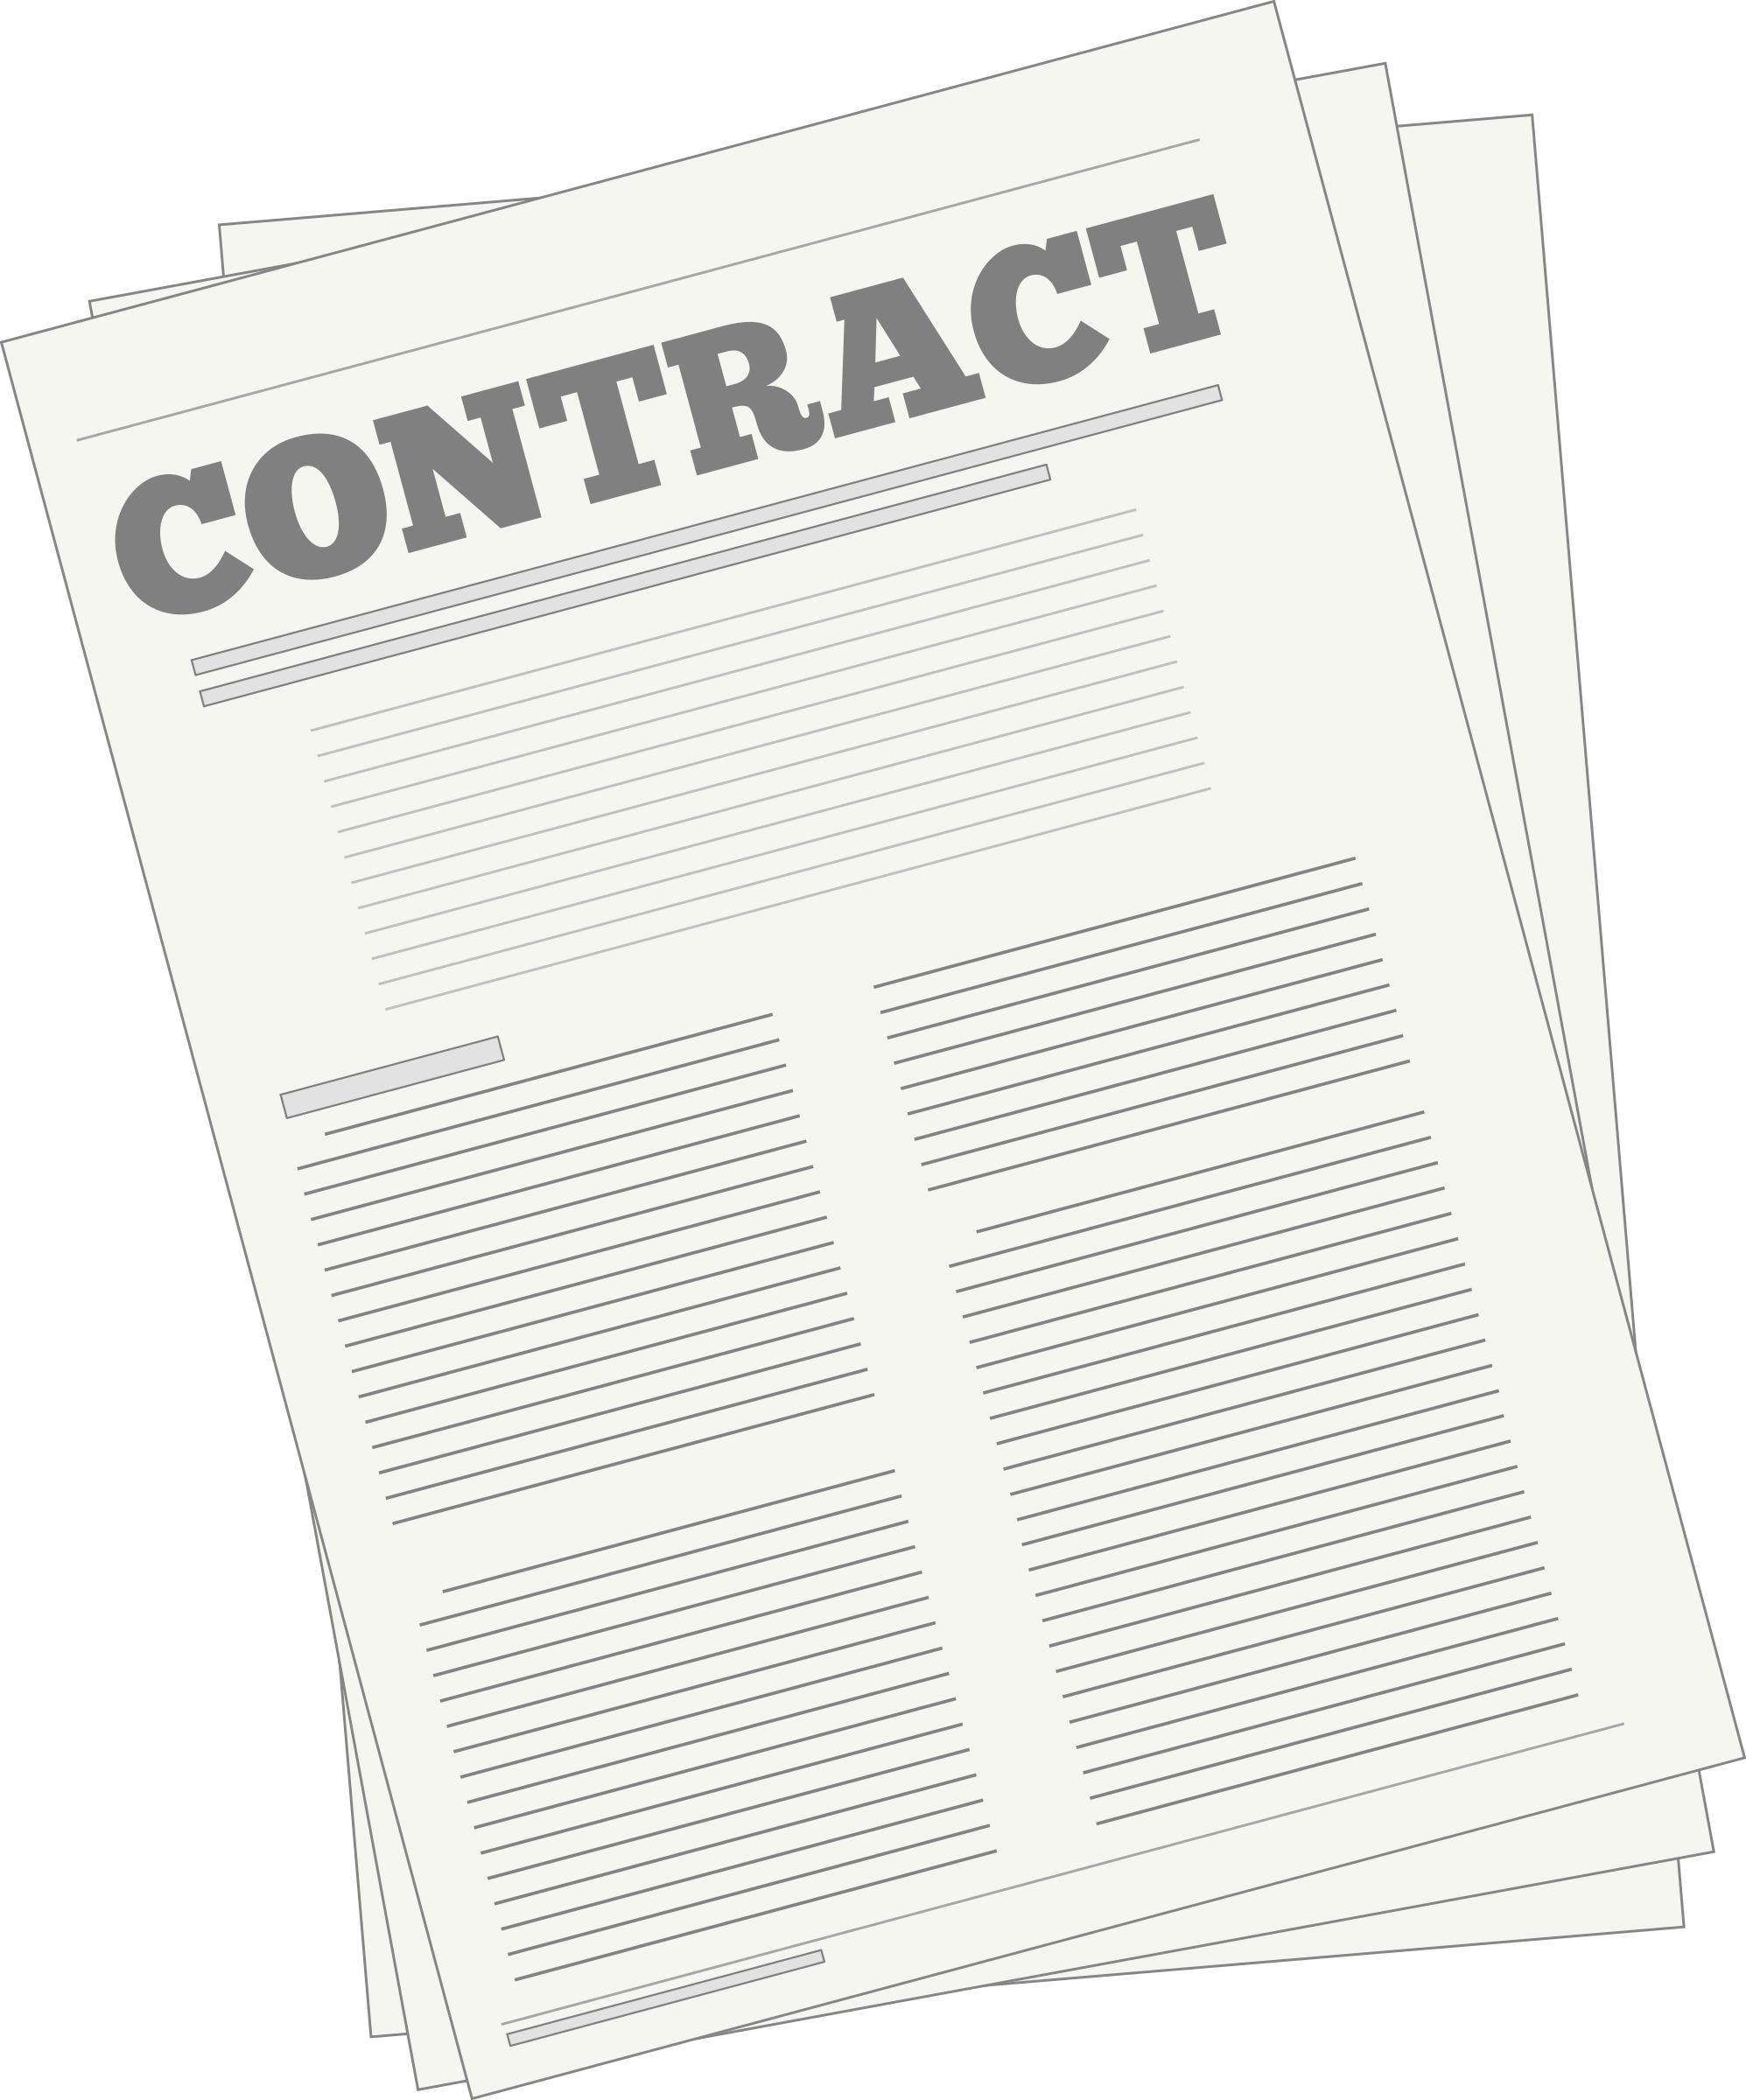 Conflict clipart agreement. Contracts clip art panda